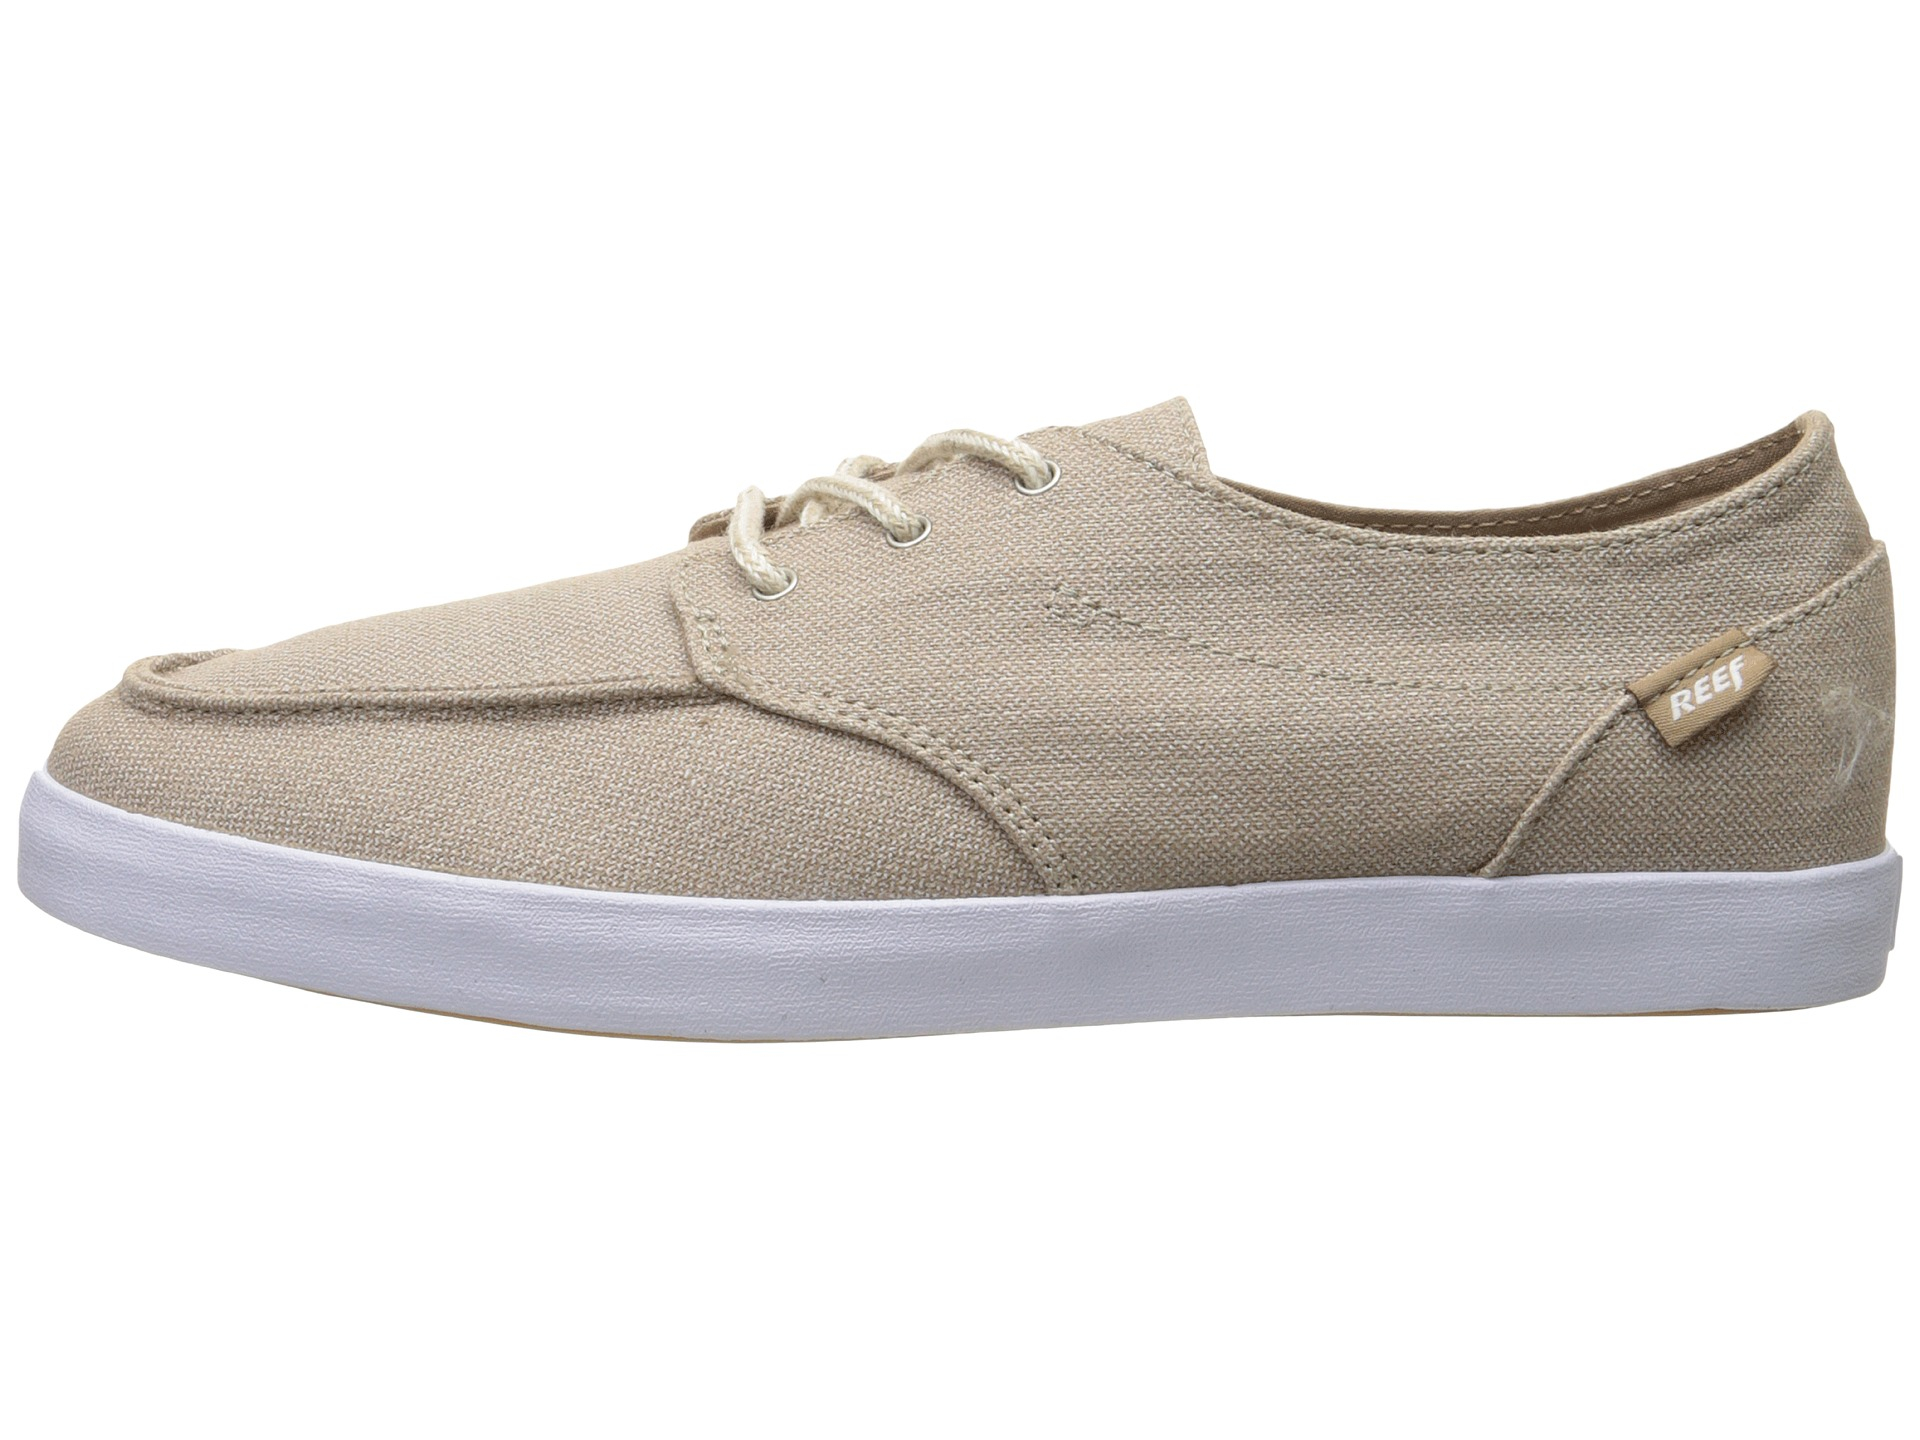 5655c8c4da97 Gallery. Previously sold at  Zappos · Men s Deck Shoes ...